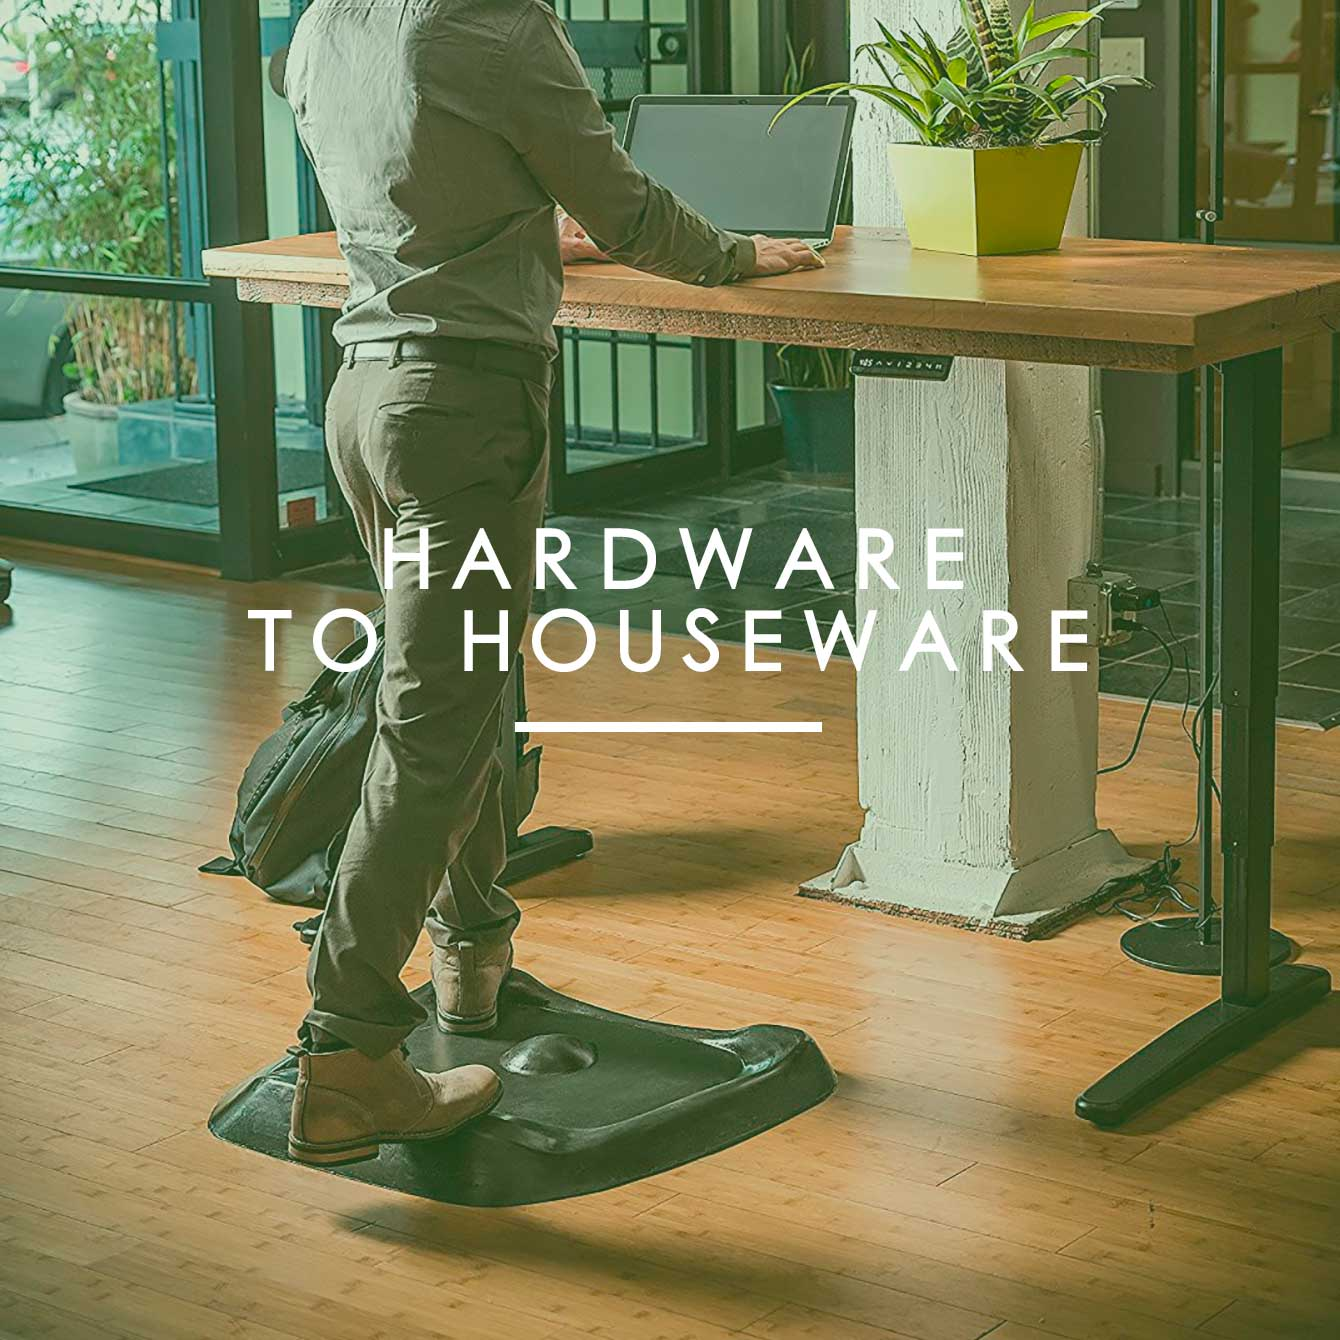 Hardware to Houseware